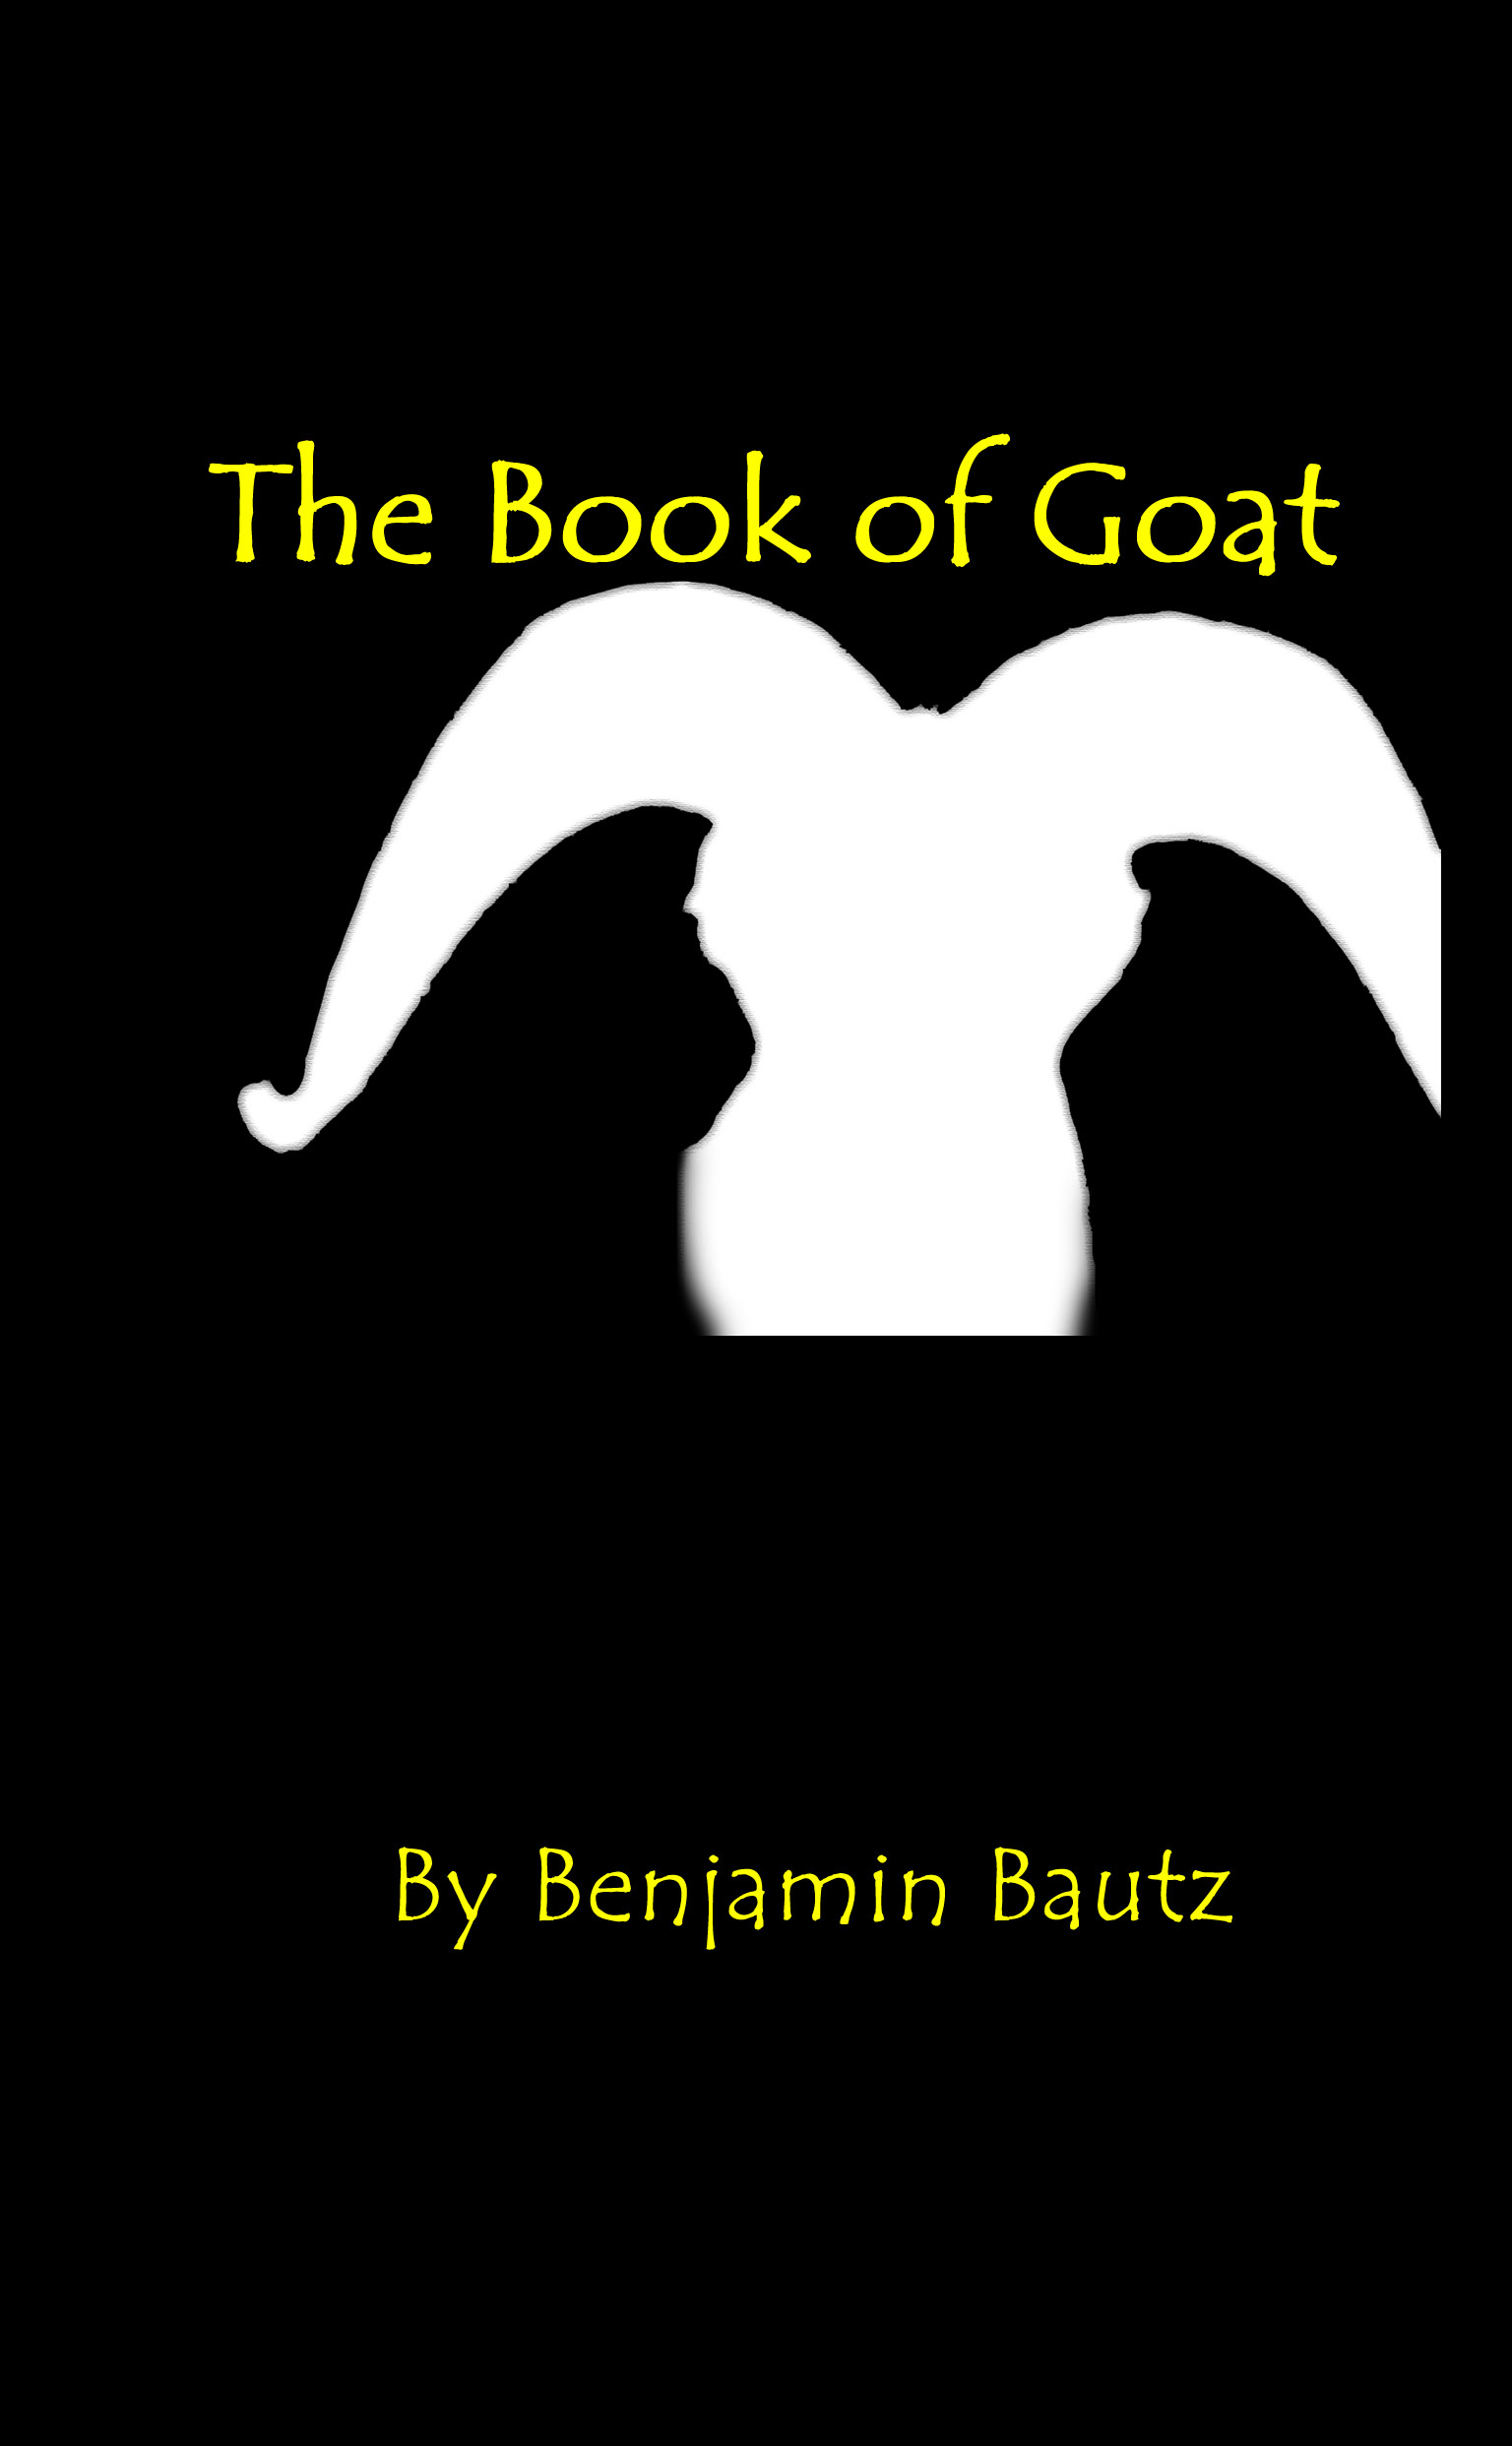 the book of goat